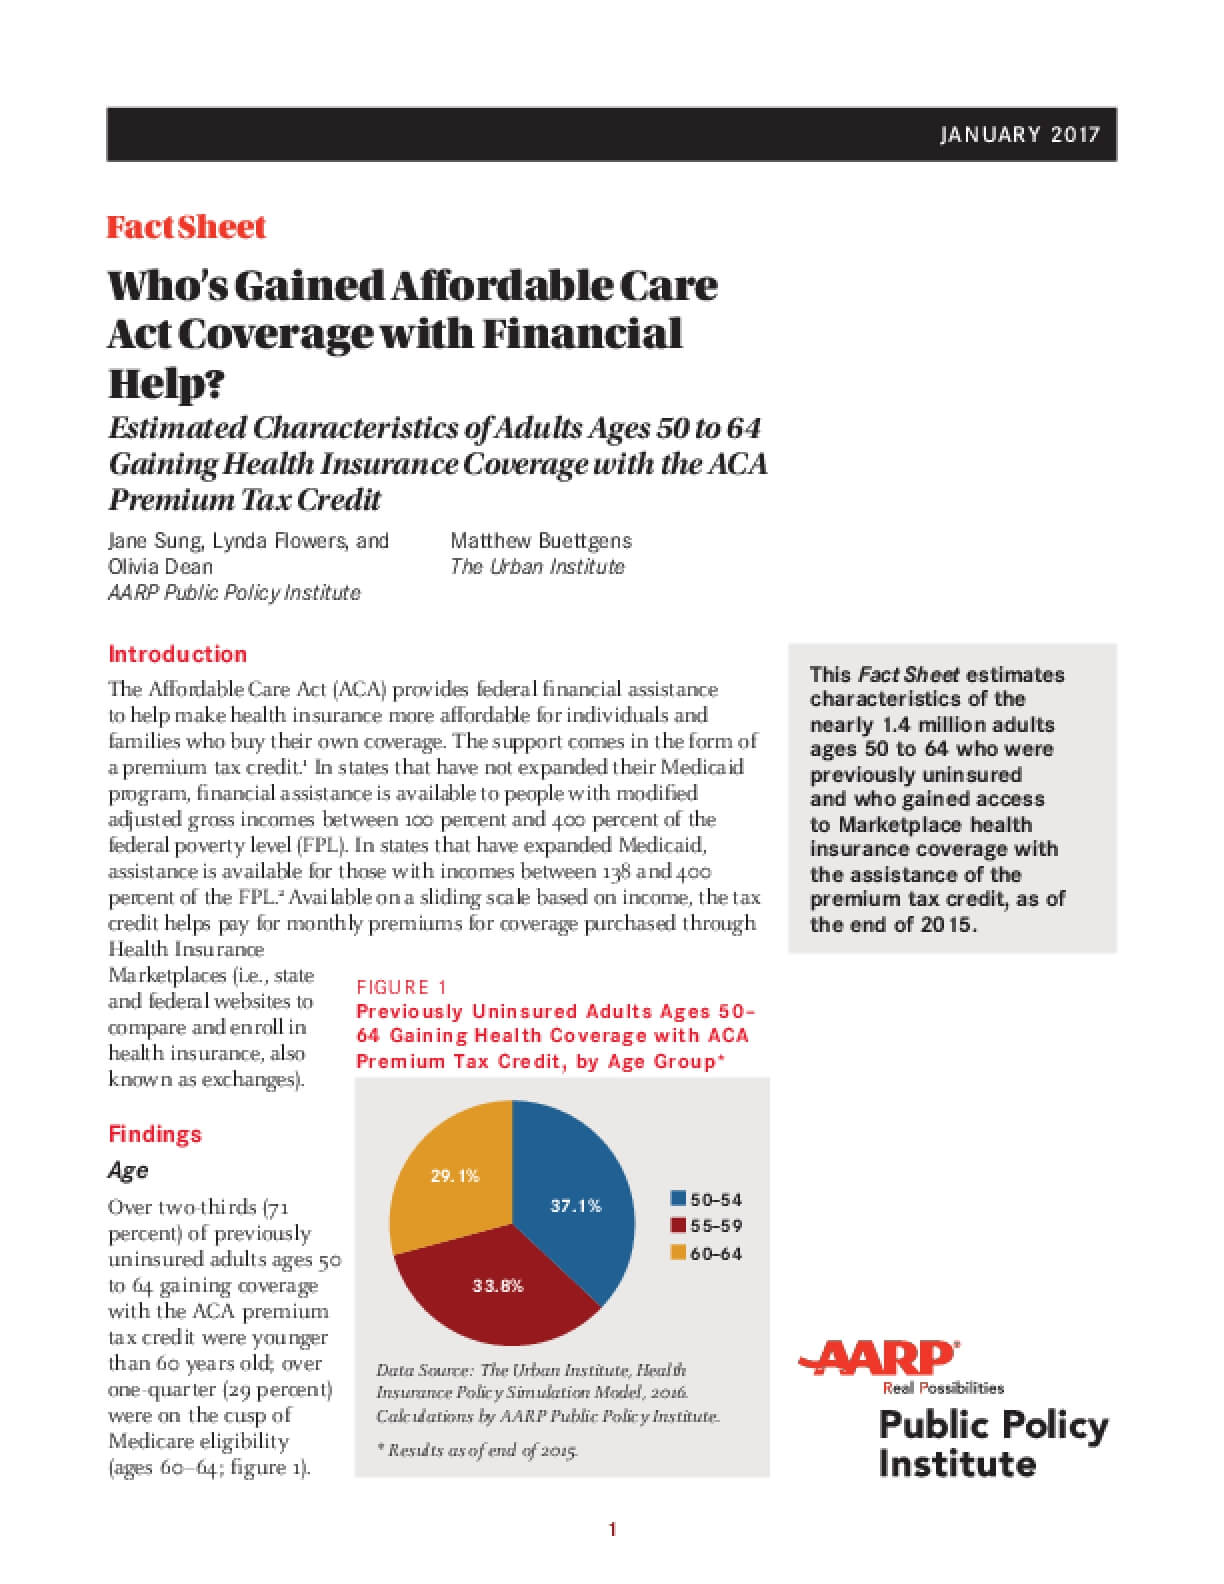 Who's Gained Affordable Care Act Coverage with Financial Help? Estimated Characteristics of Adults Ages 50 to 64  Gaining Health Insurance Coverage with the ACA  Premium Tax Credit